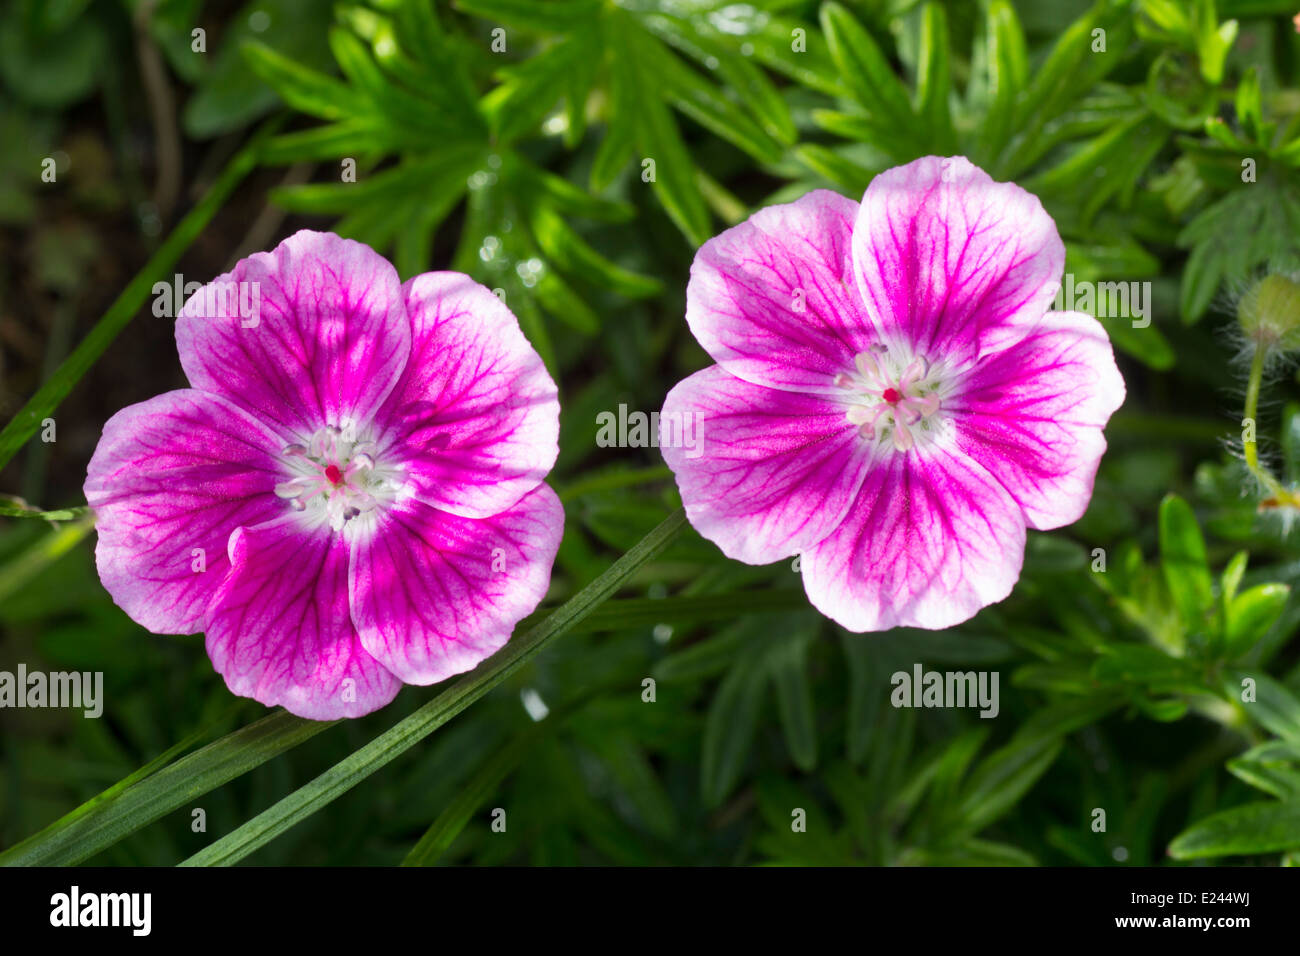 Pink And White Flowers Of The Small Hardy Geranium Geranium Stock